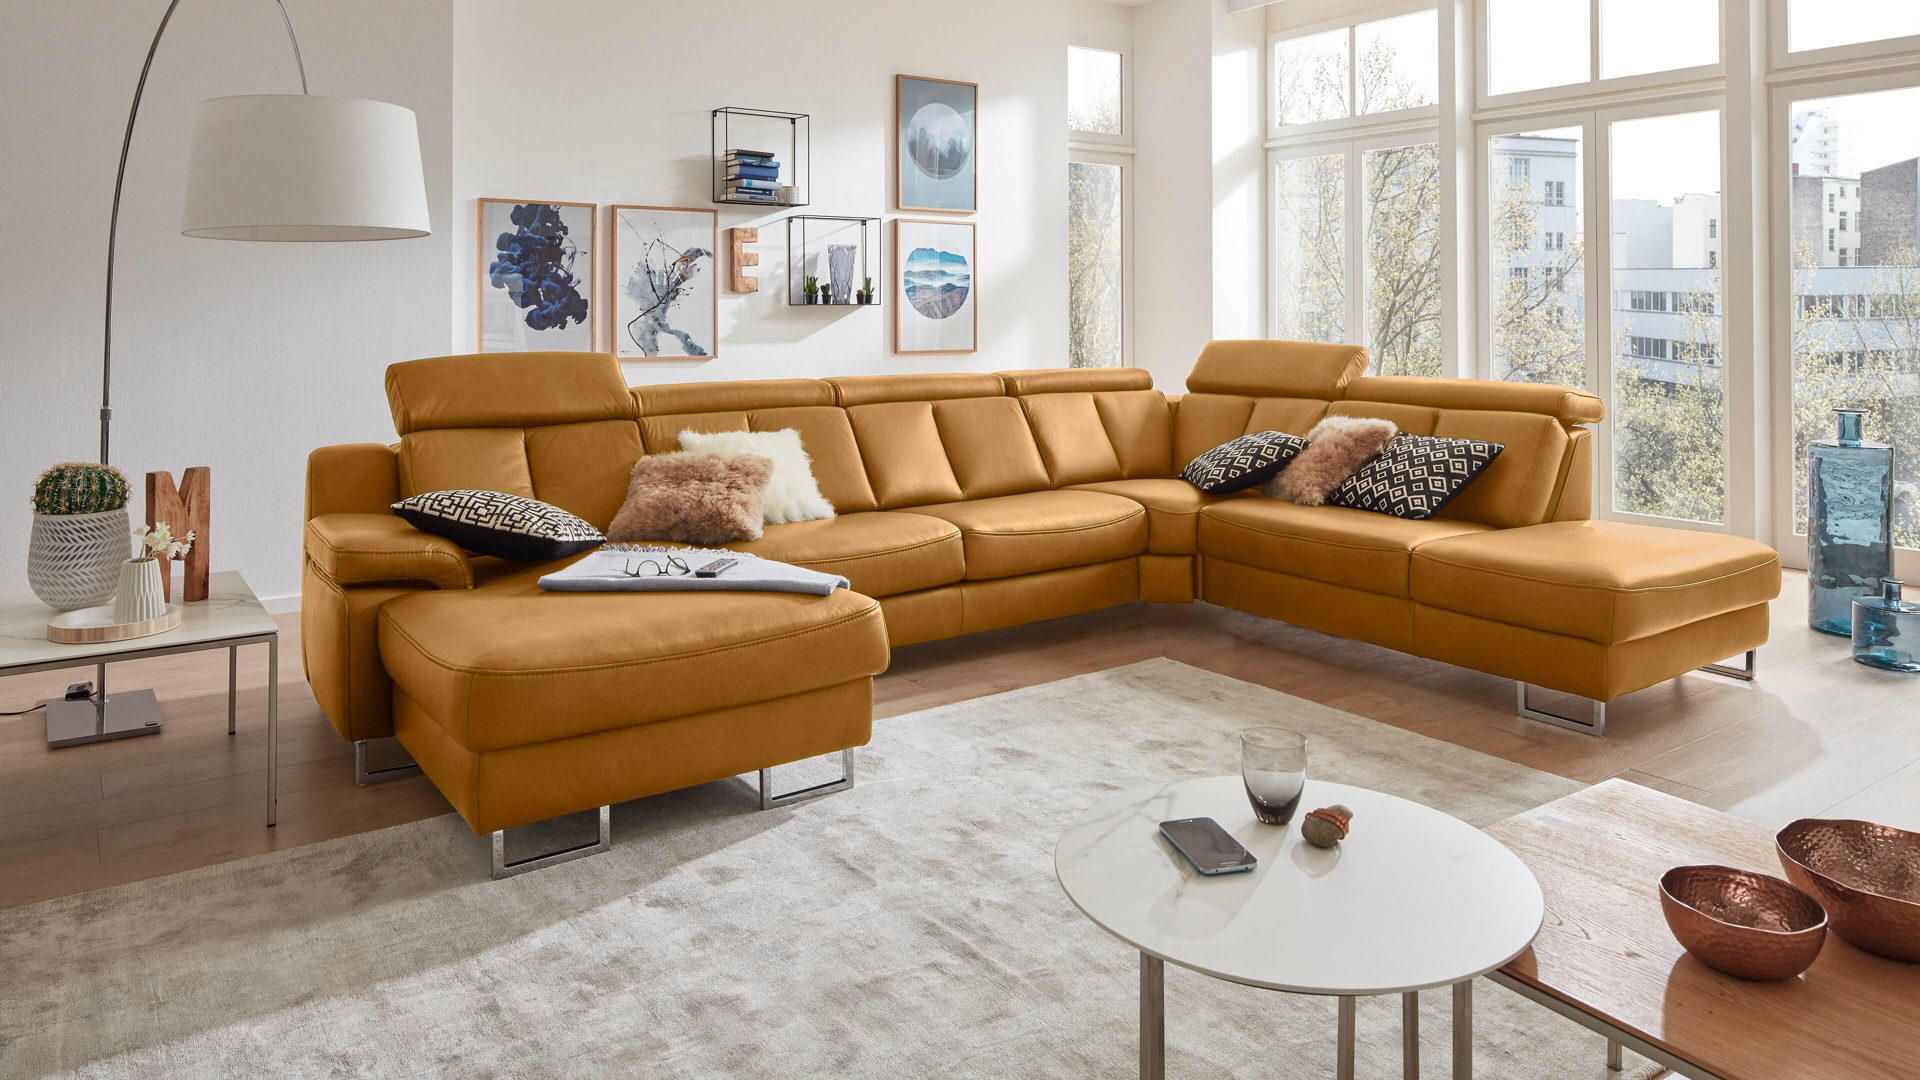 Ecksofa Interliving aus Leder in Gelb Interliving Sofa Serie 4050 – Wohnlandschaft kurkumafarbenes LongLife-Leder Cloudy Kurkuma & Chromfüße – Stellfläche ca. 368 x 261 cm